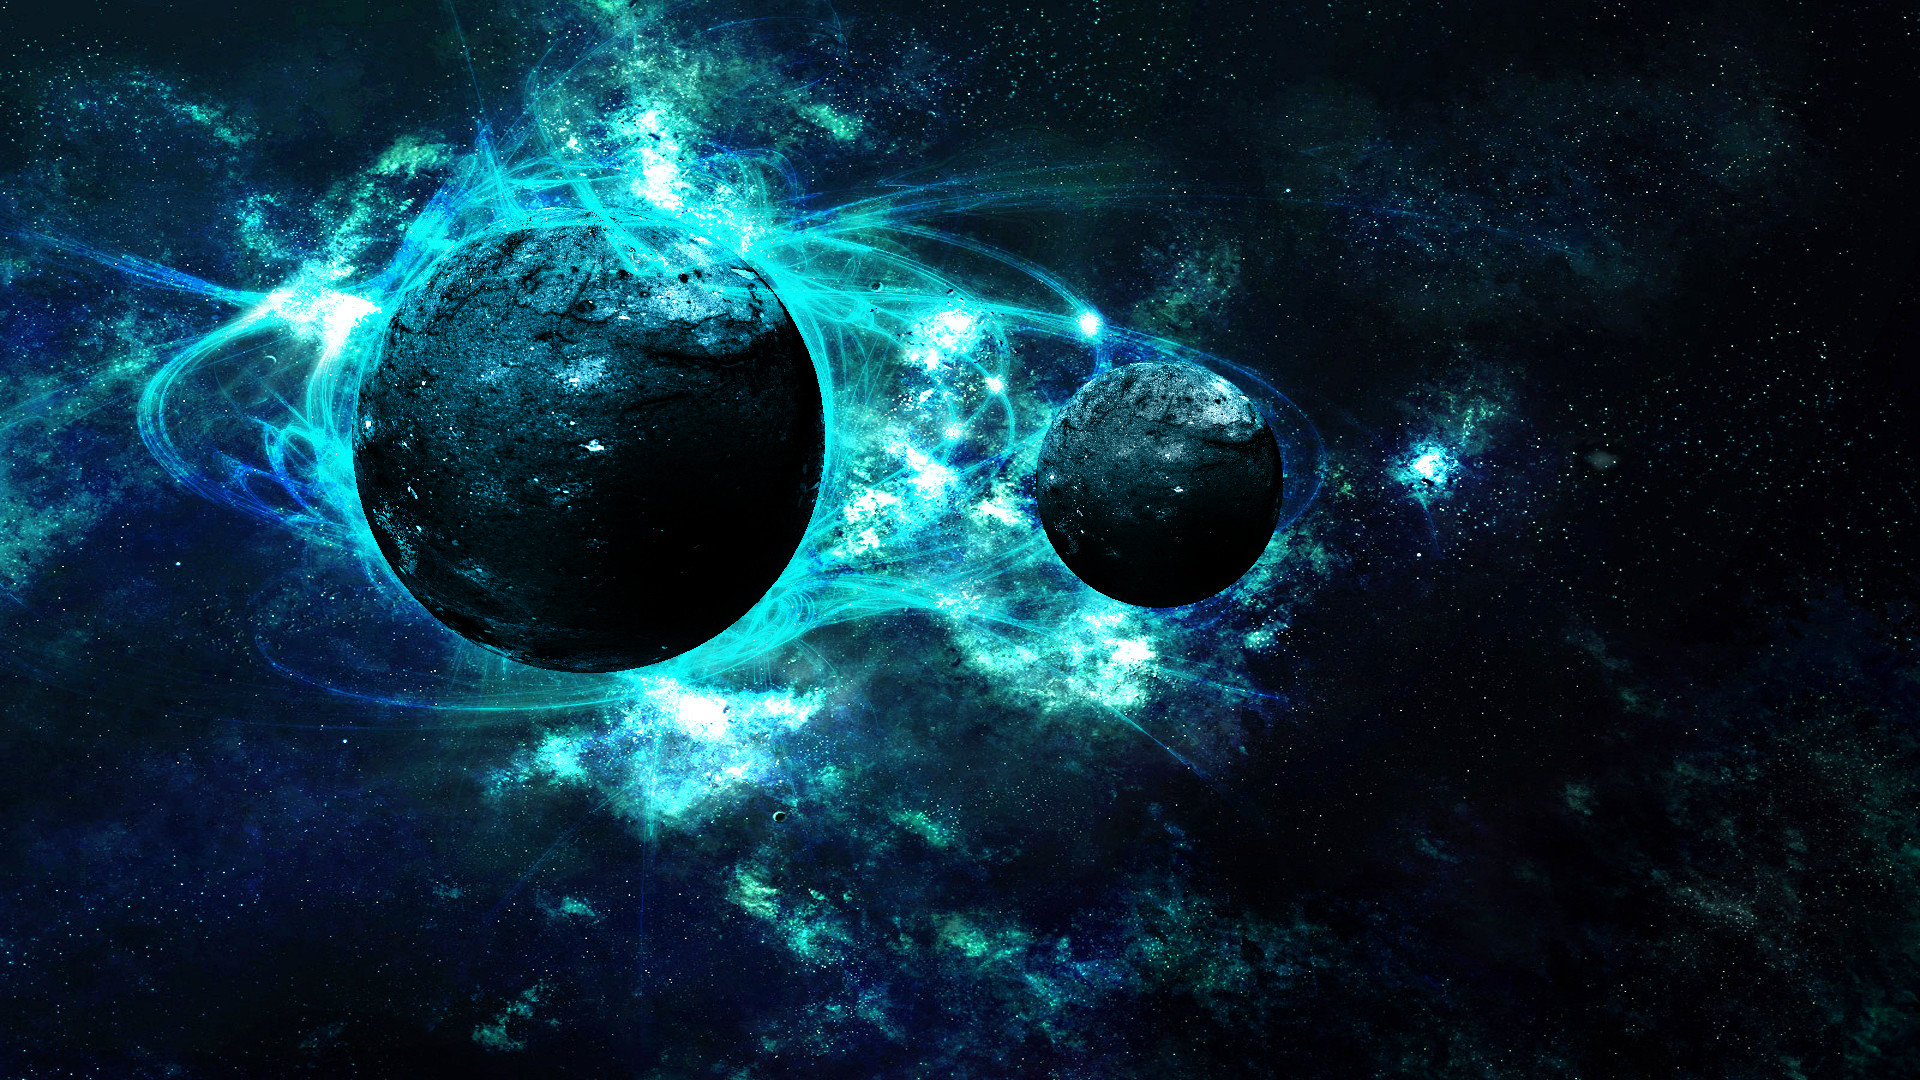 Space/Fantasy Wallpaper Set 62 | Awesome Wallpapers